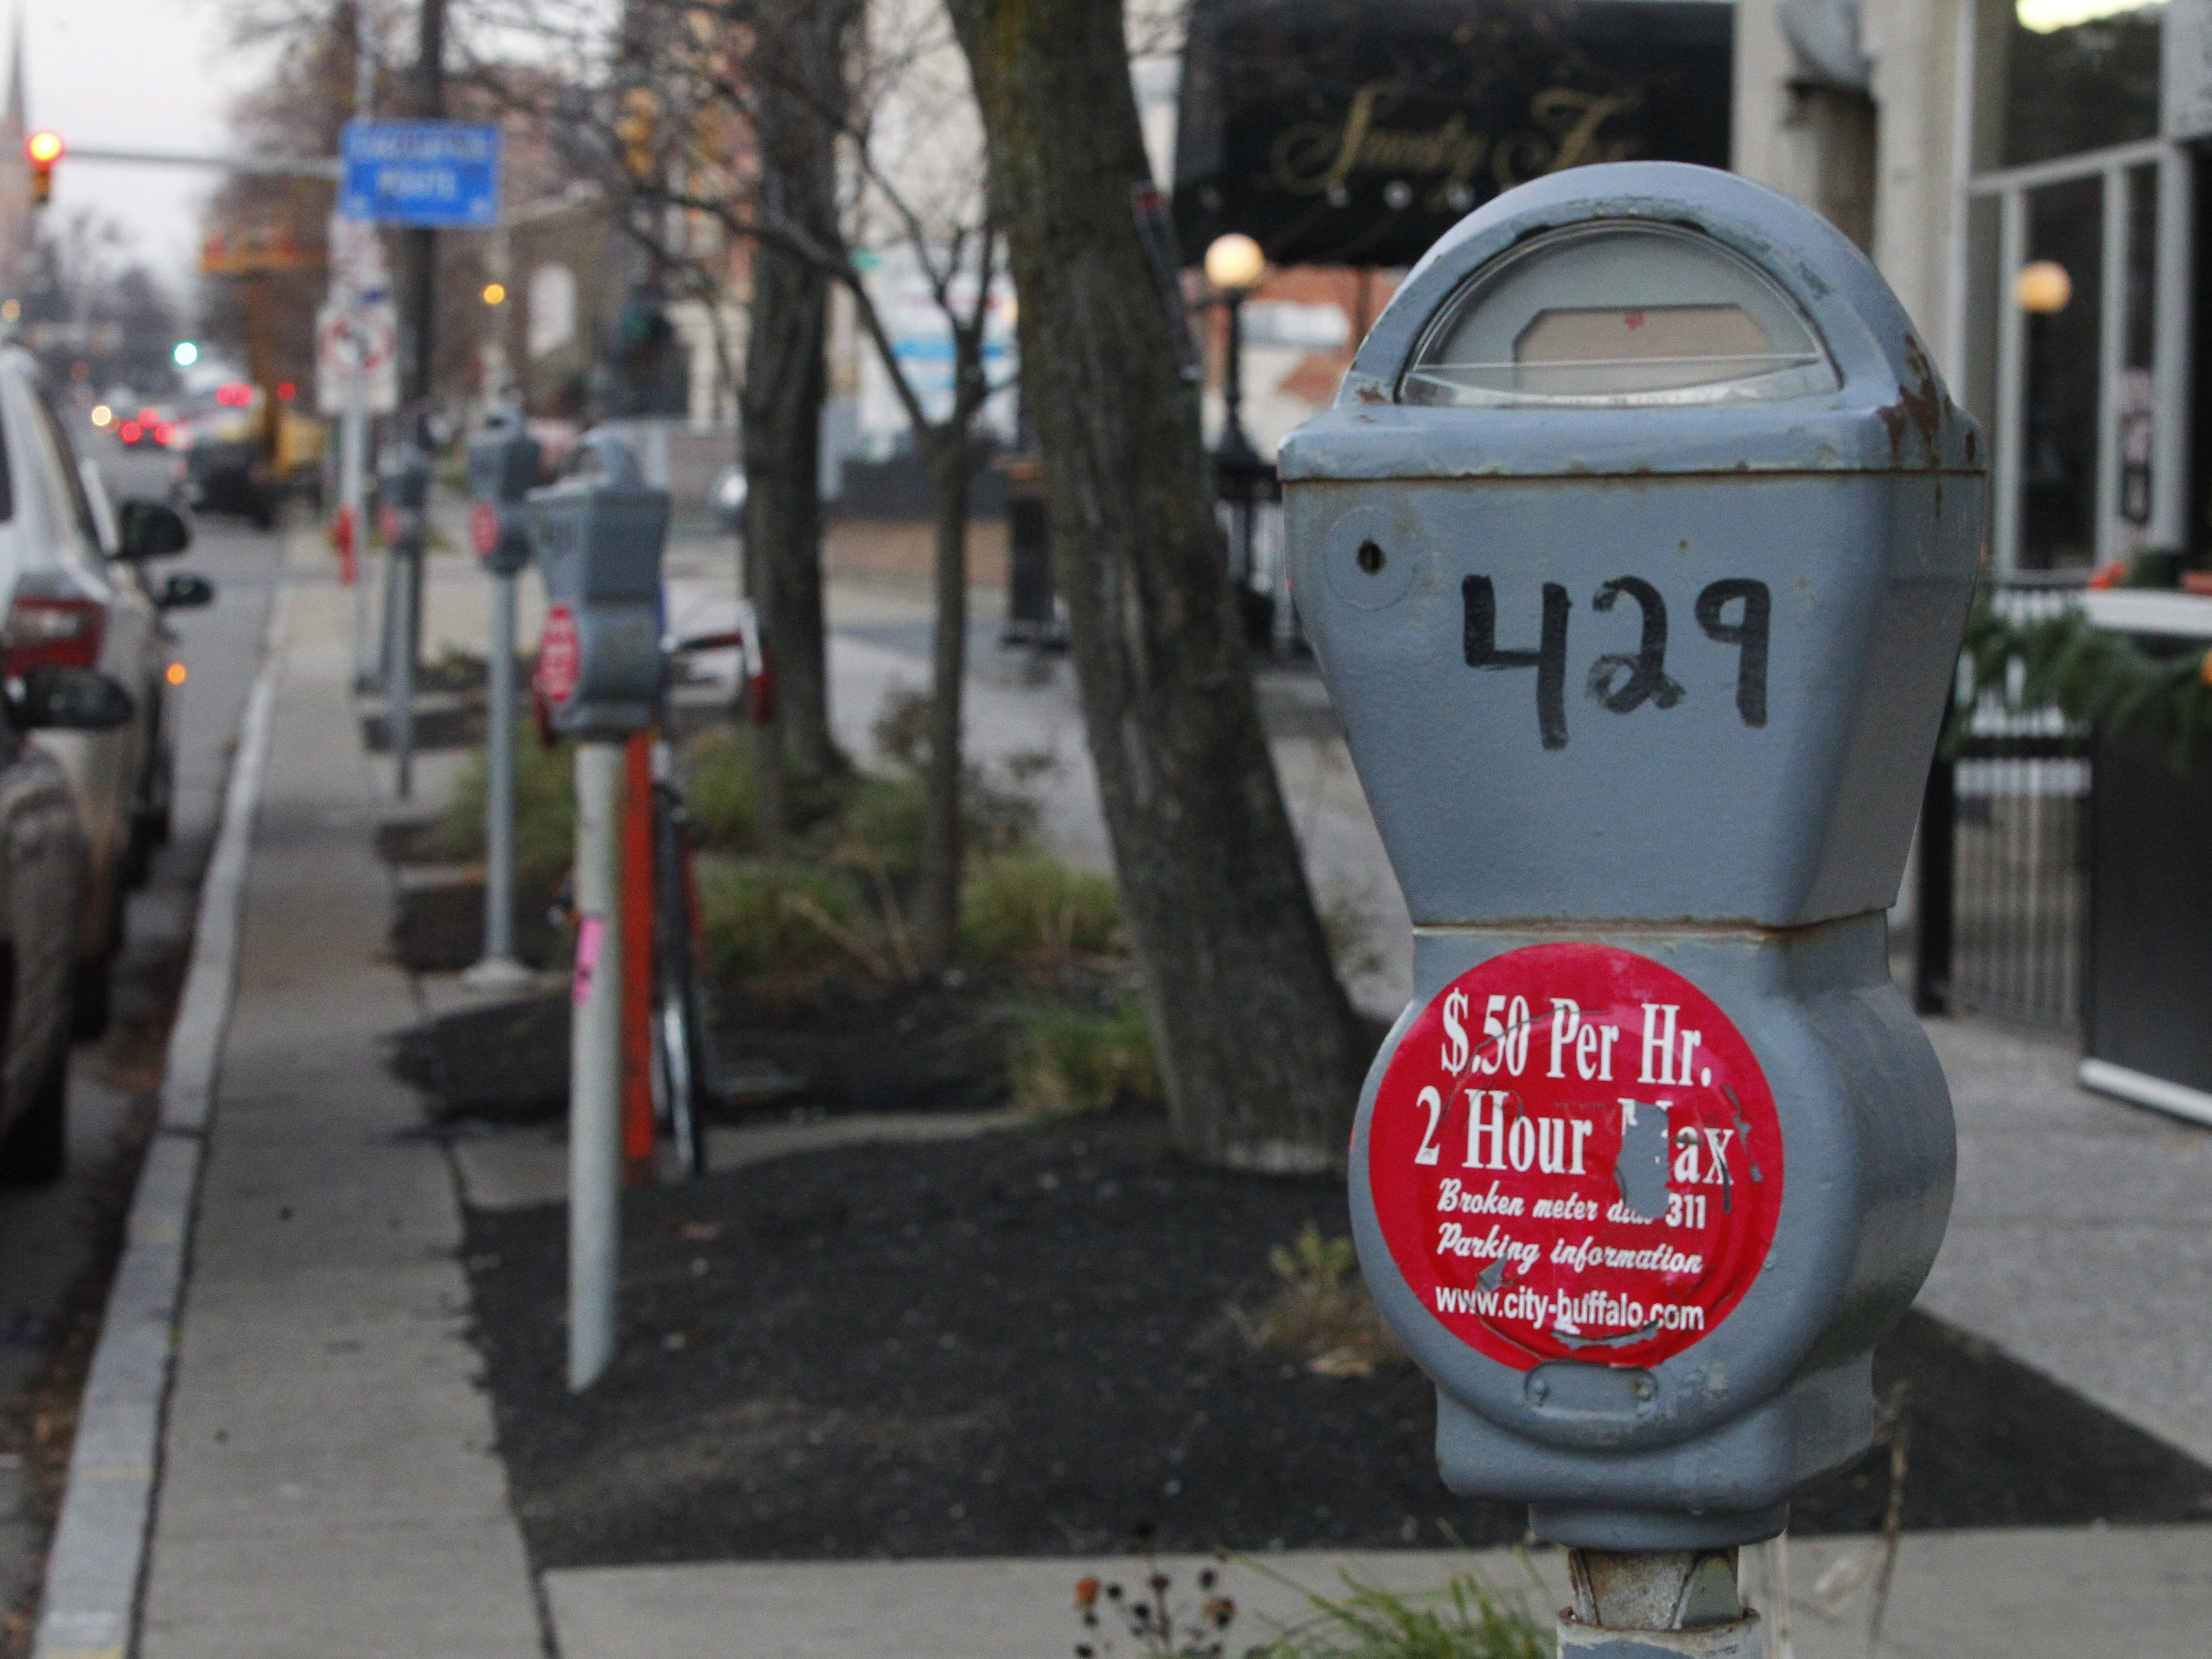 More than $300,000 was stolen from city parking meters in  a 10-year period.